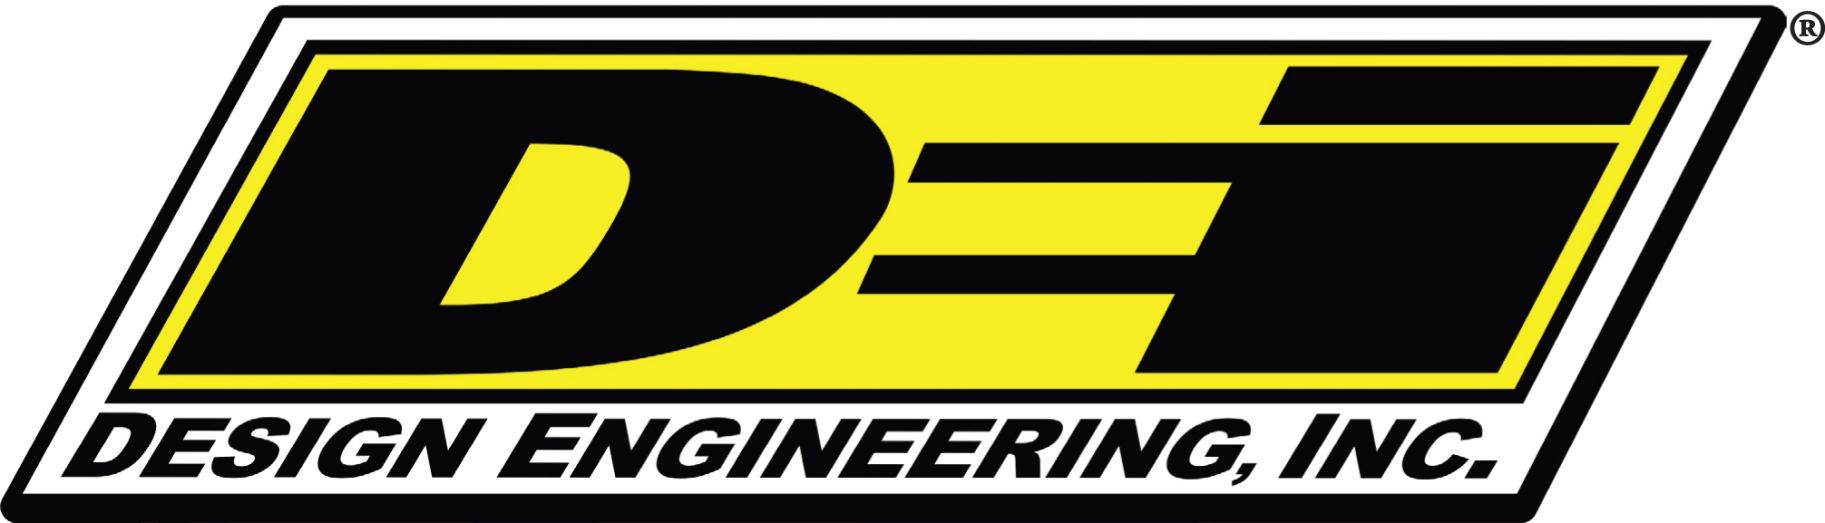 Design Engineering Inc. (DEI) Logo